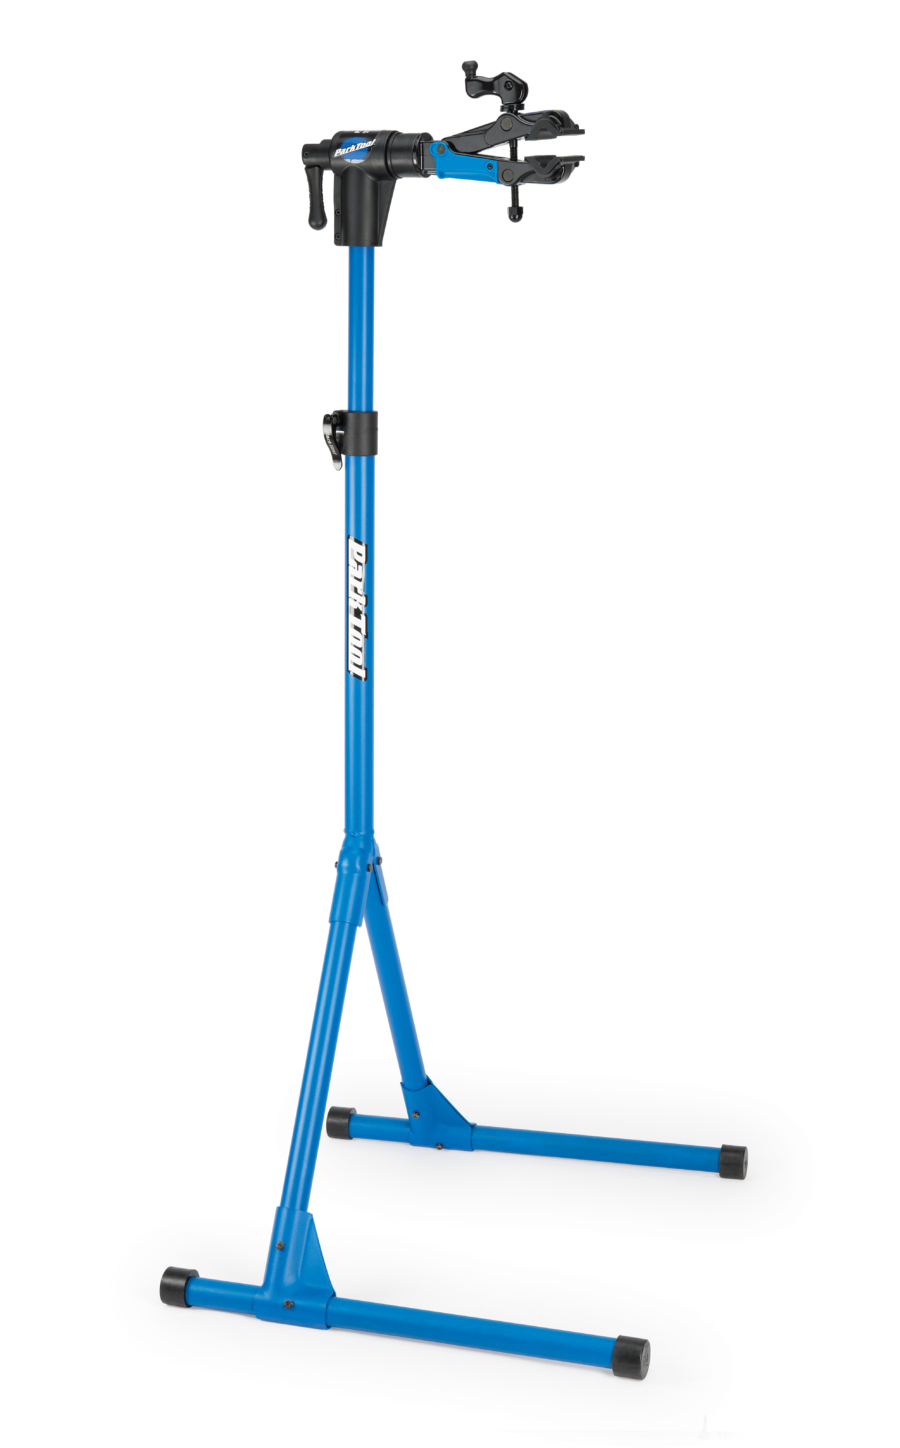 The Park Tool PCS-4-2 Deluxe Home Mechanic Repair Stand, enlarged